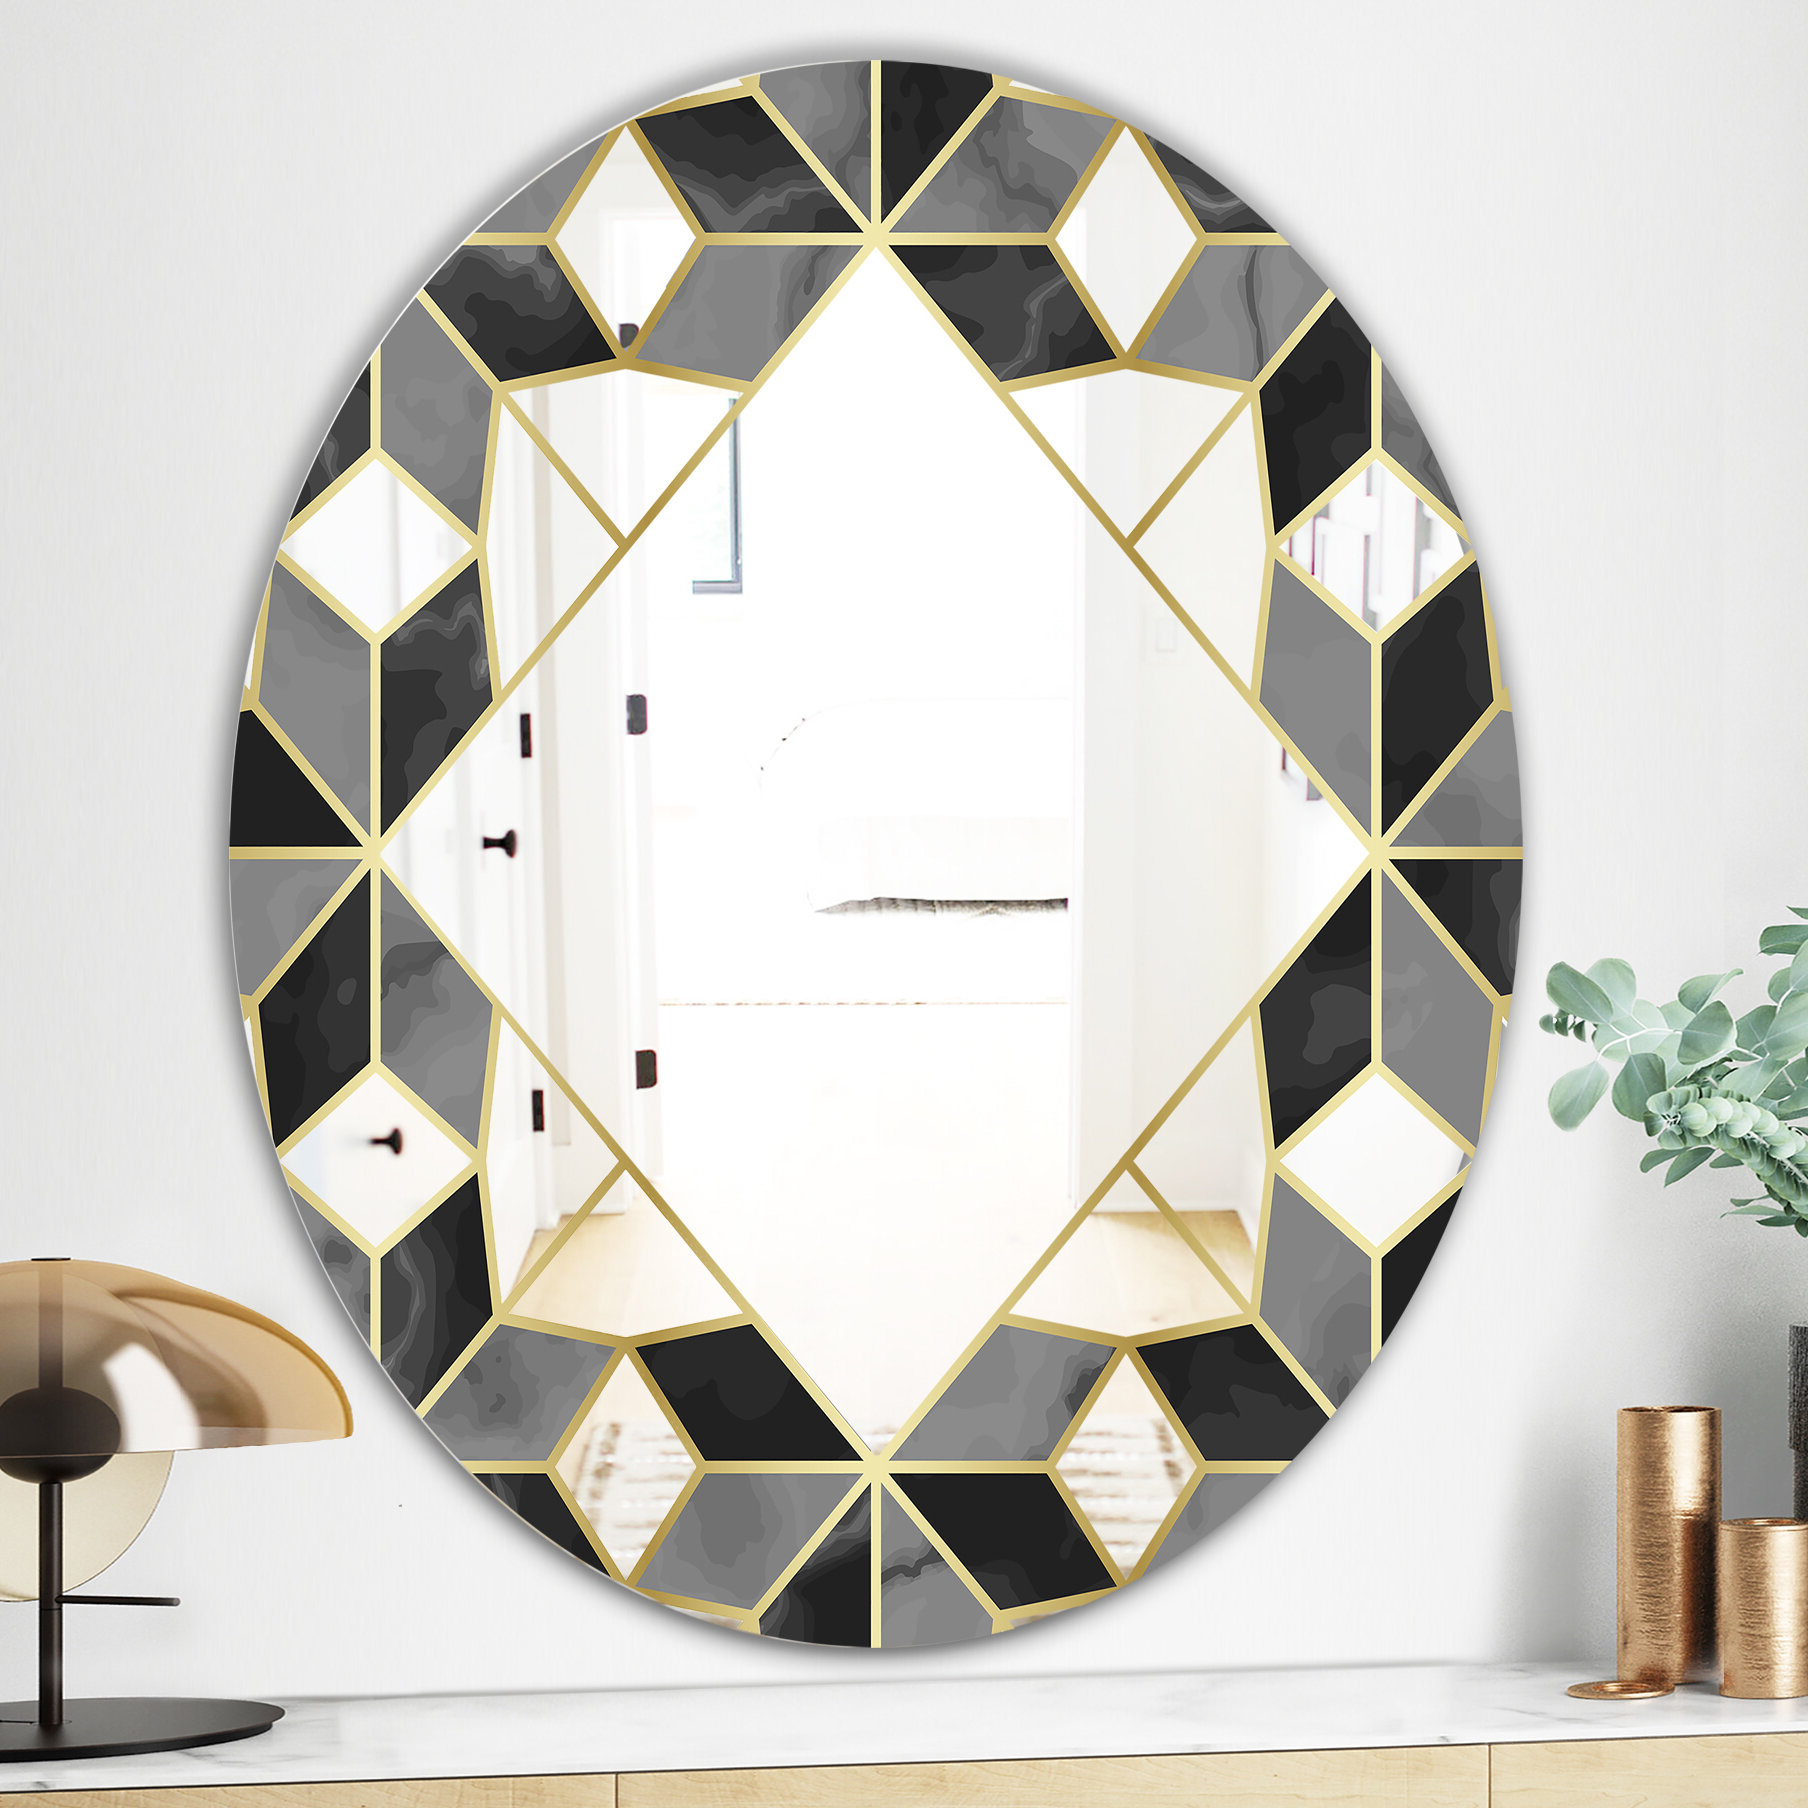 Traditional Frameless Diamond Wall Mirrors For Best And Newest Triangular Diamond Universe 2 Mid Century Frameless Bathroom/vanity Mirror (View 10 of 20)